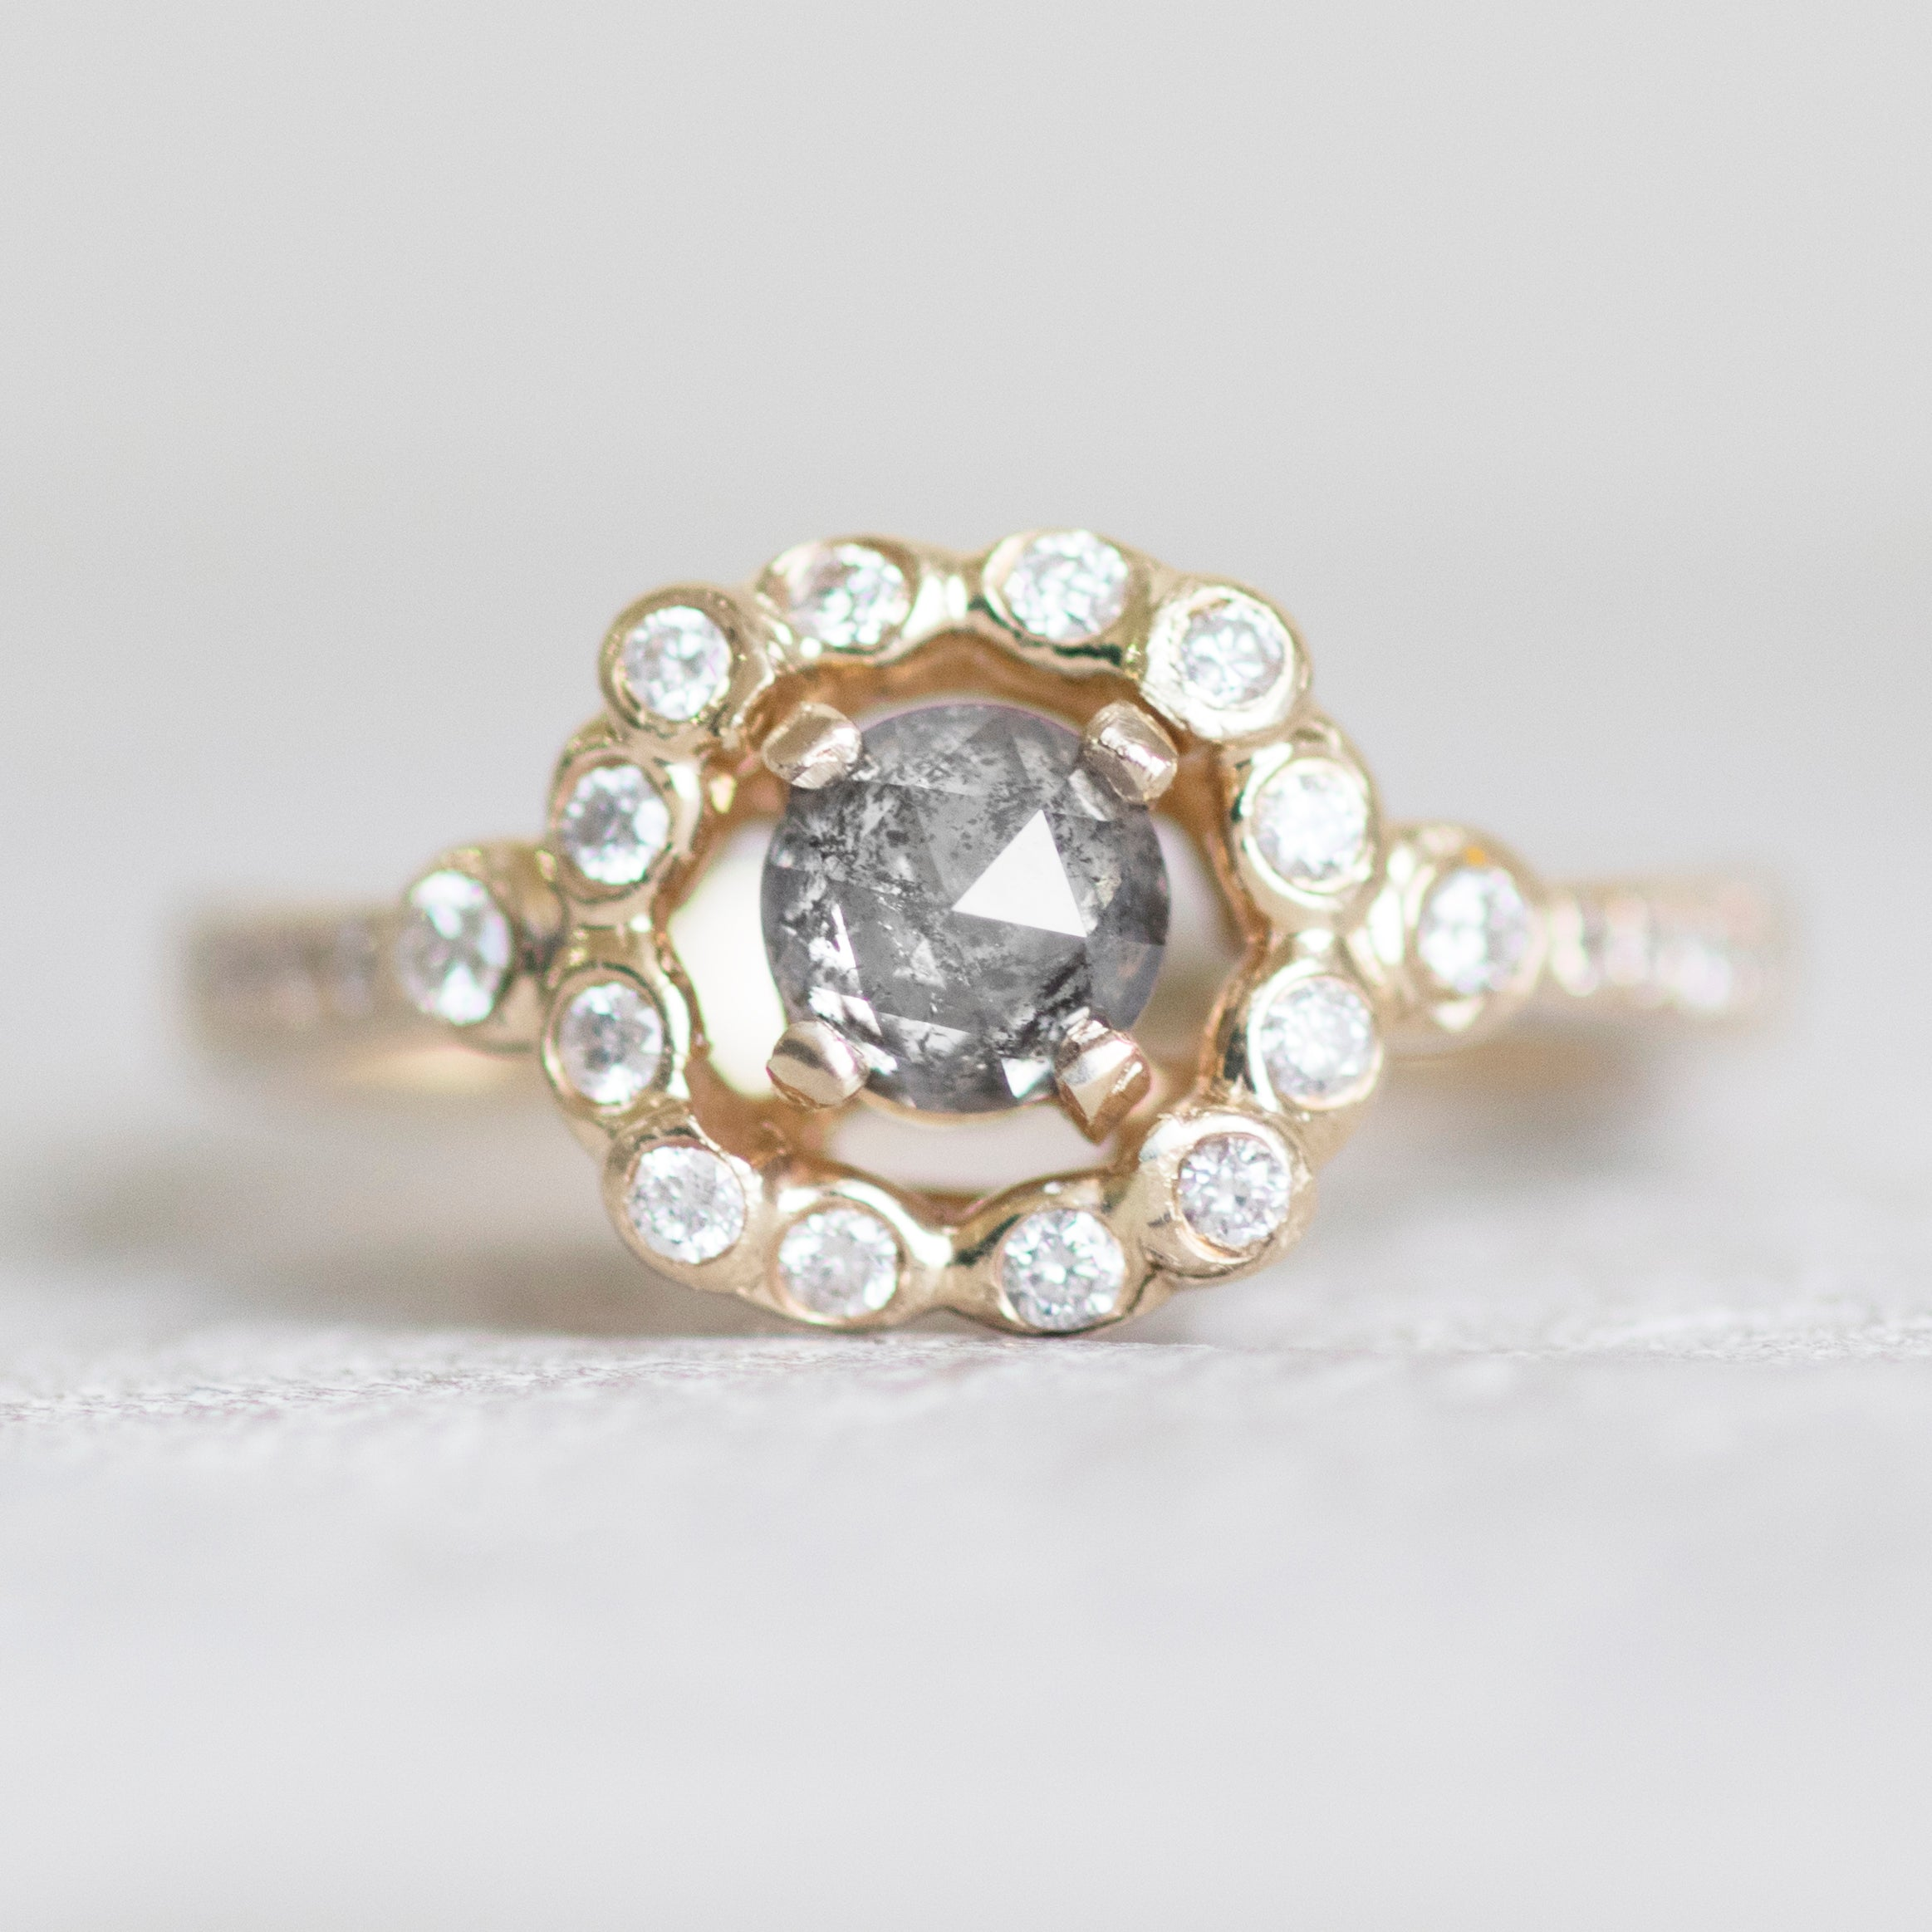 ring inspired unique for diamond stone bands engagement by styles edwardian vintage rings antique brides zand with news timeless jewelry influenced